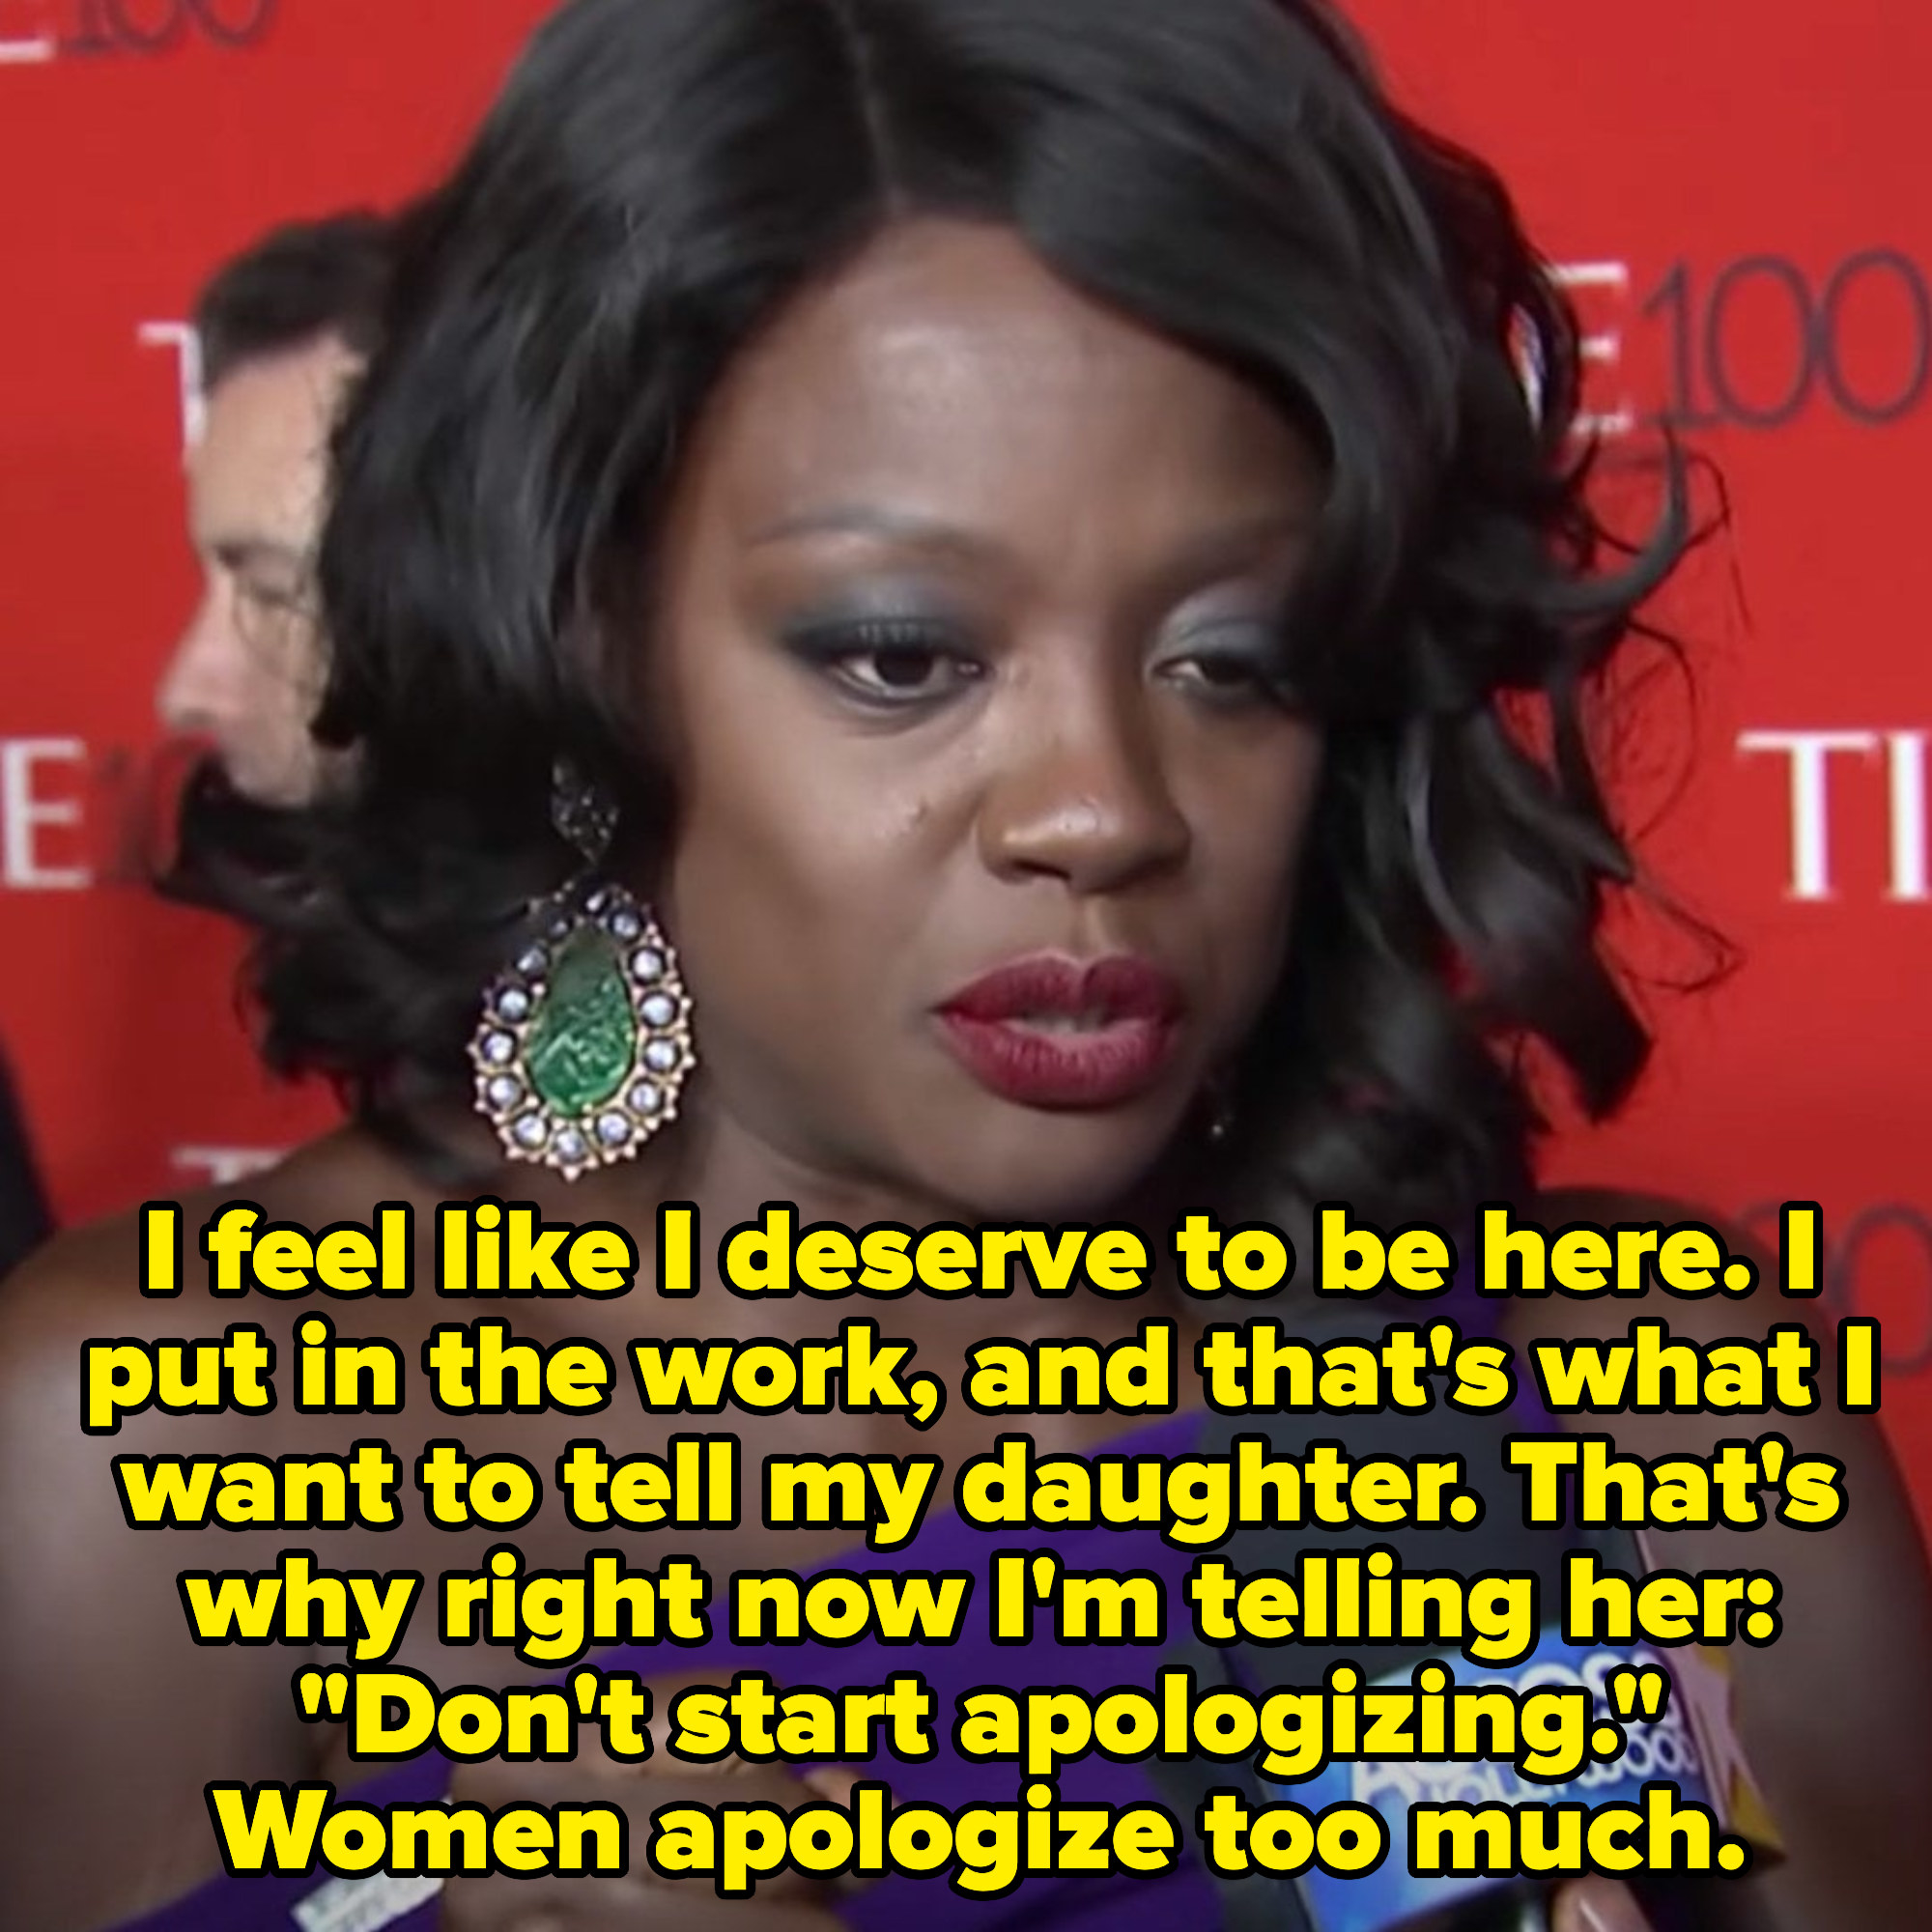 """Viola: """"I feel like I deserve to be here. I put in the work, and that's what I want to tell my daughter. That's why right now I'm telling her: 'Don't start apologizing.' Women apologize too much"""""""